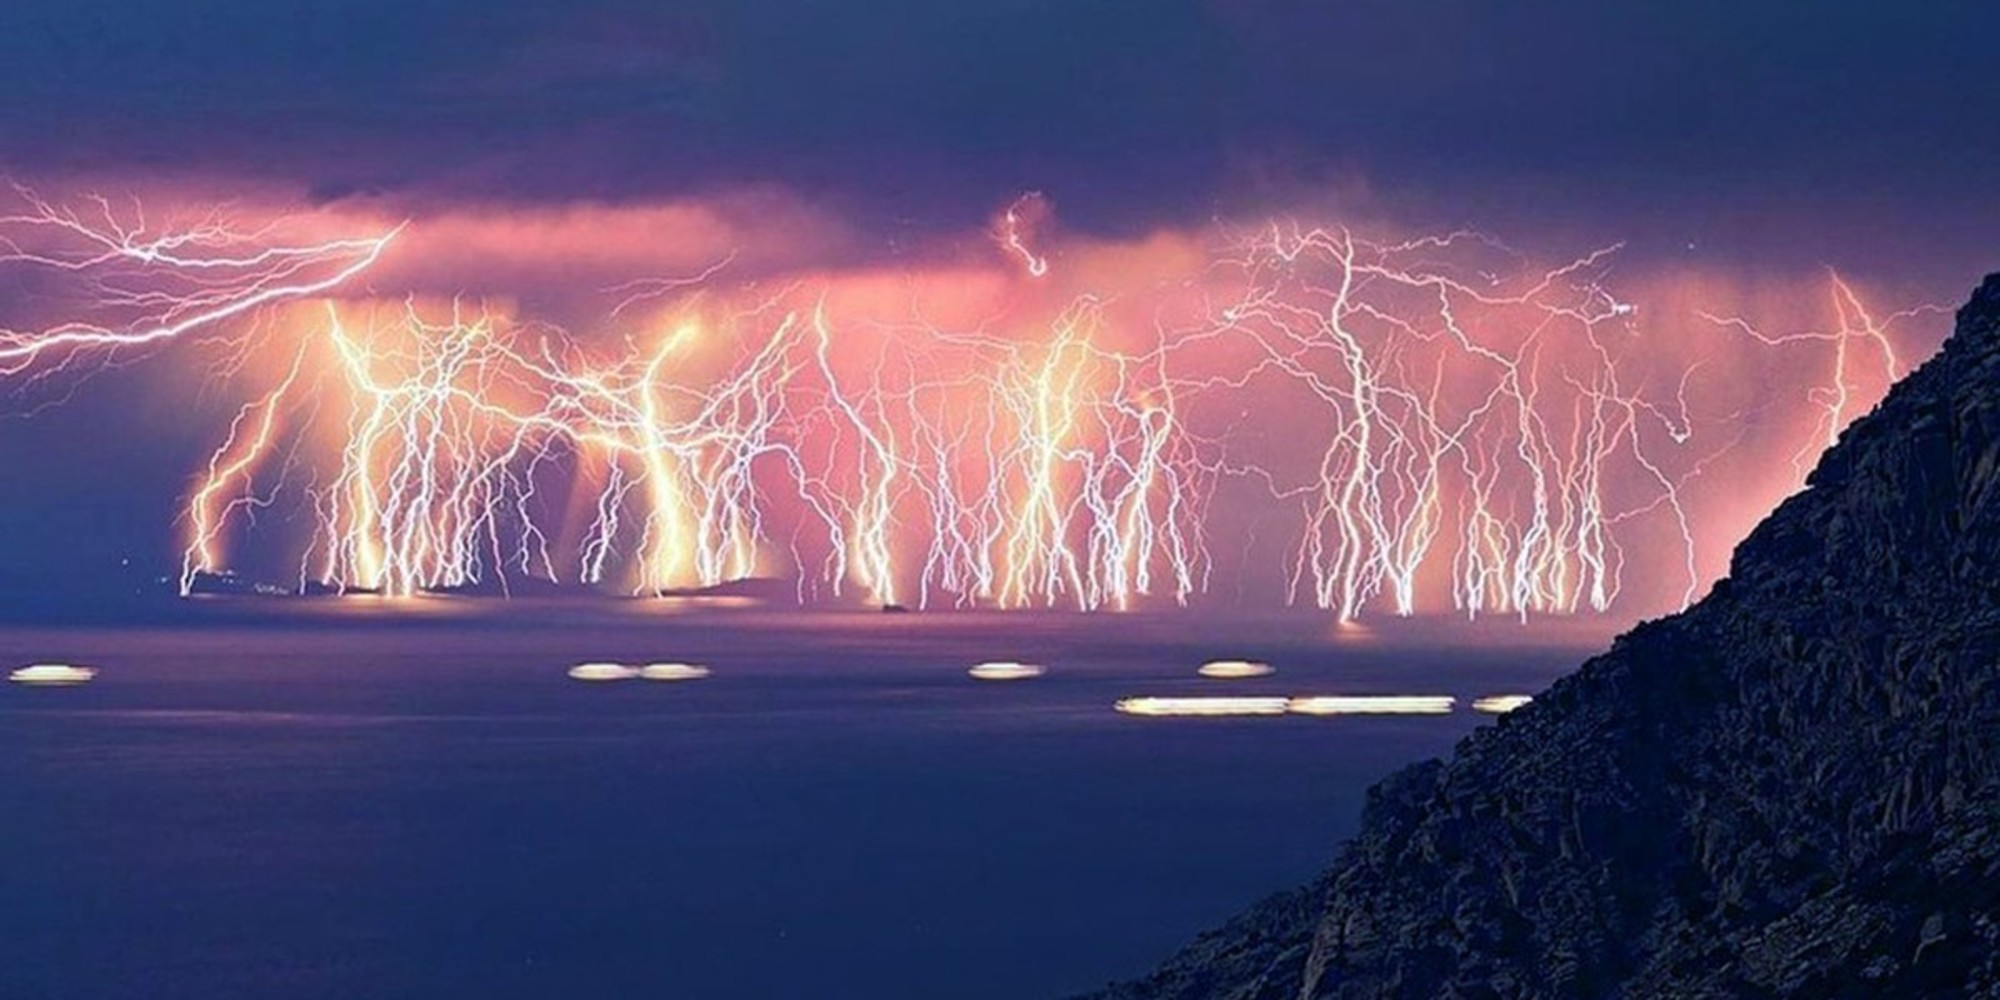 High Definition Fall Wallpapers Lightning Catatumbo Wallpapers High Quality Download Free